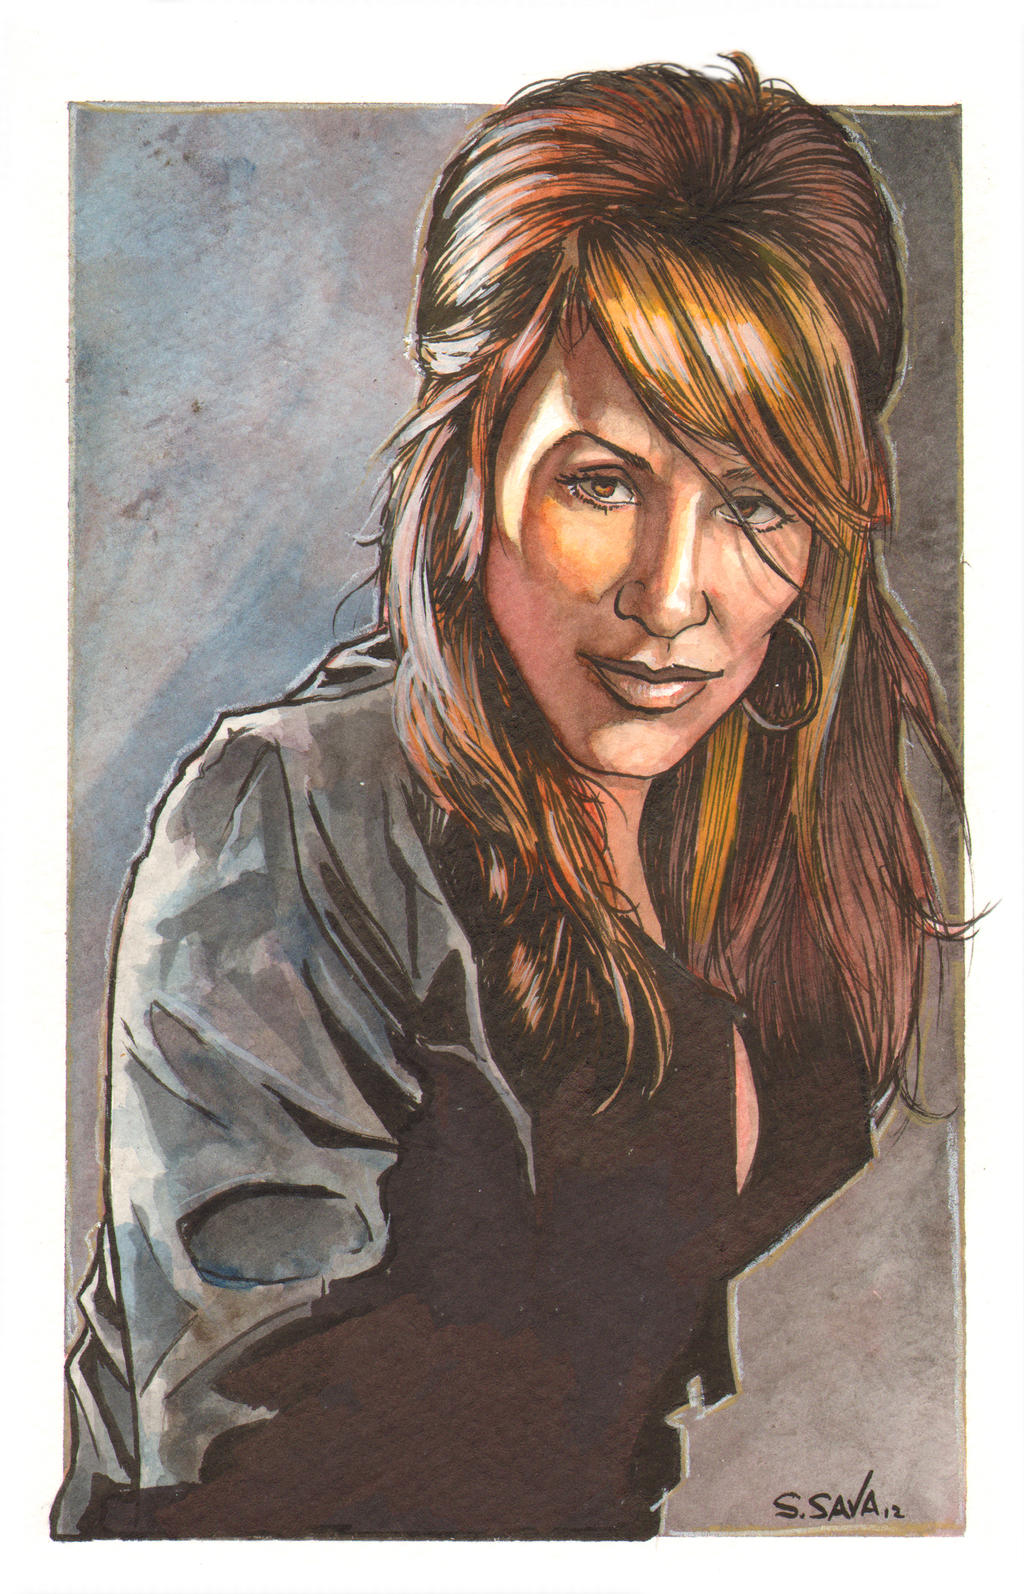 Gemma Sons Of Anarchy Tattoos - Gemma from sons of anarchy watercolor by ssava